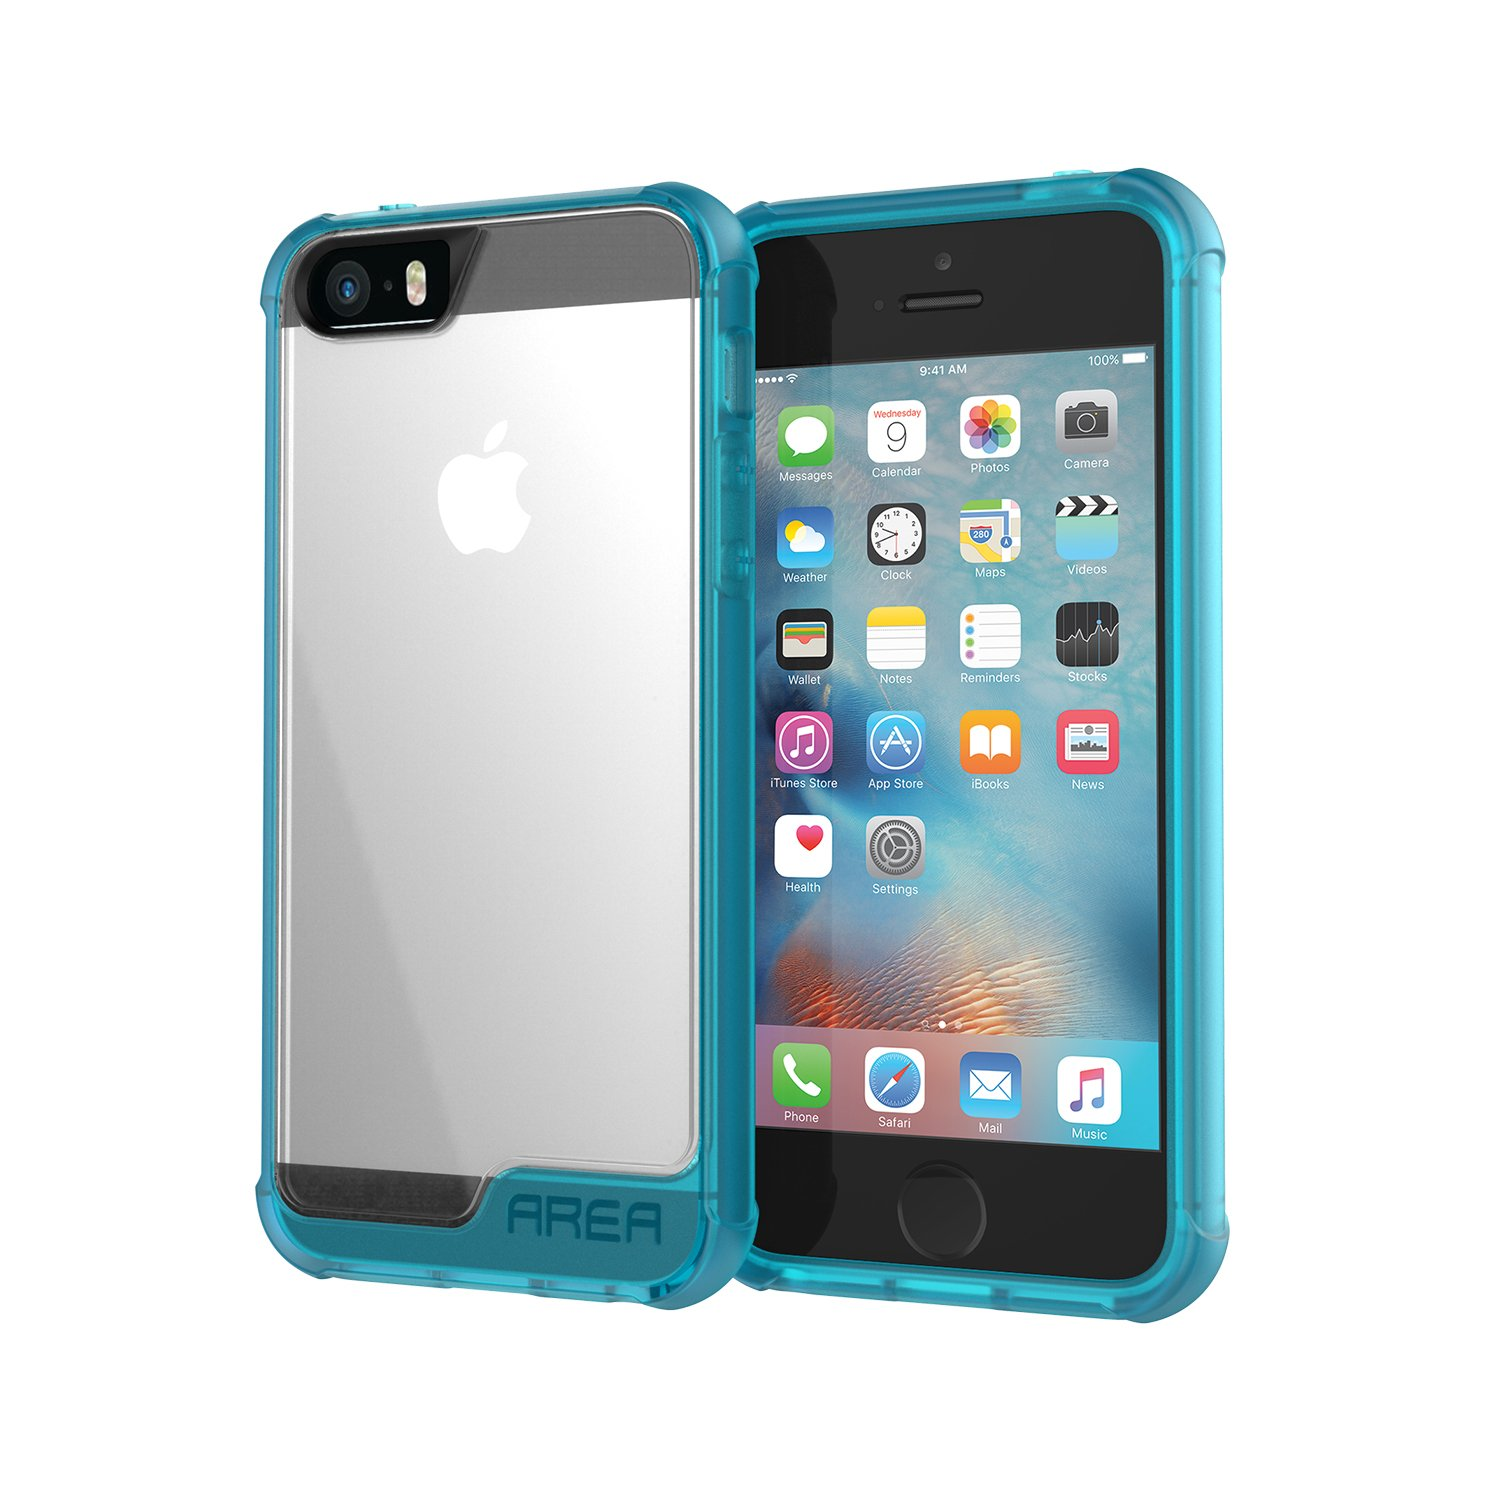 Iphone 5 5S Se Case Area By Incipio Octane Pure Case Translucent Dual Layer S.. 16